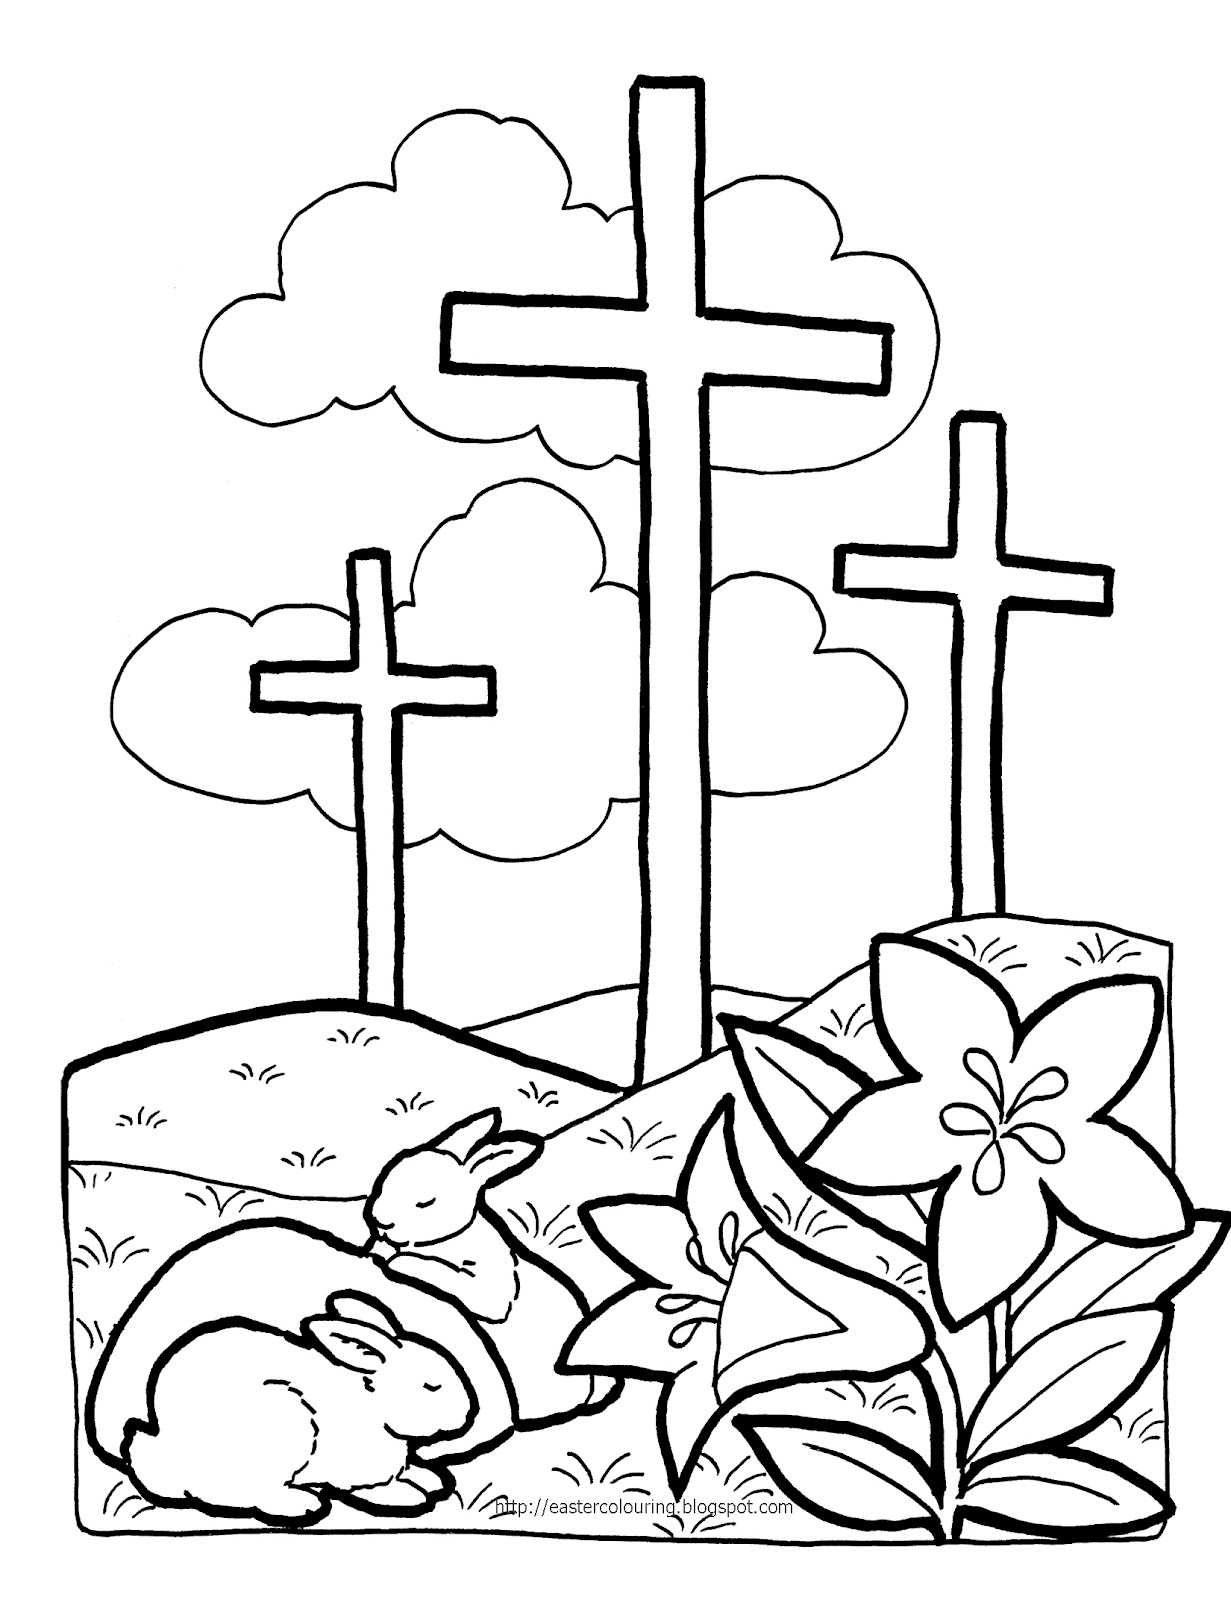 printable christian coloring pages - Religious Coloring Books